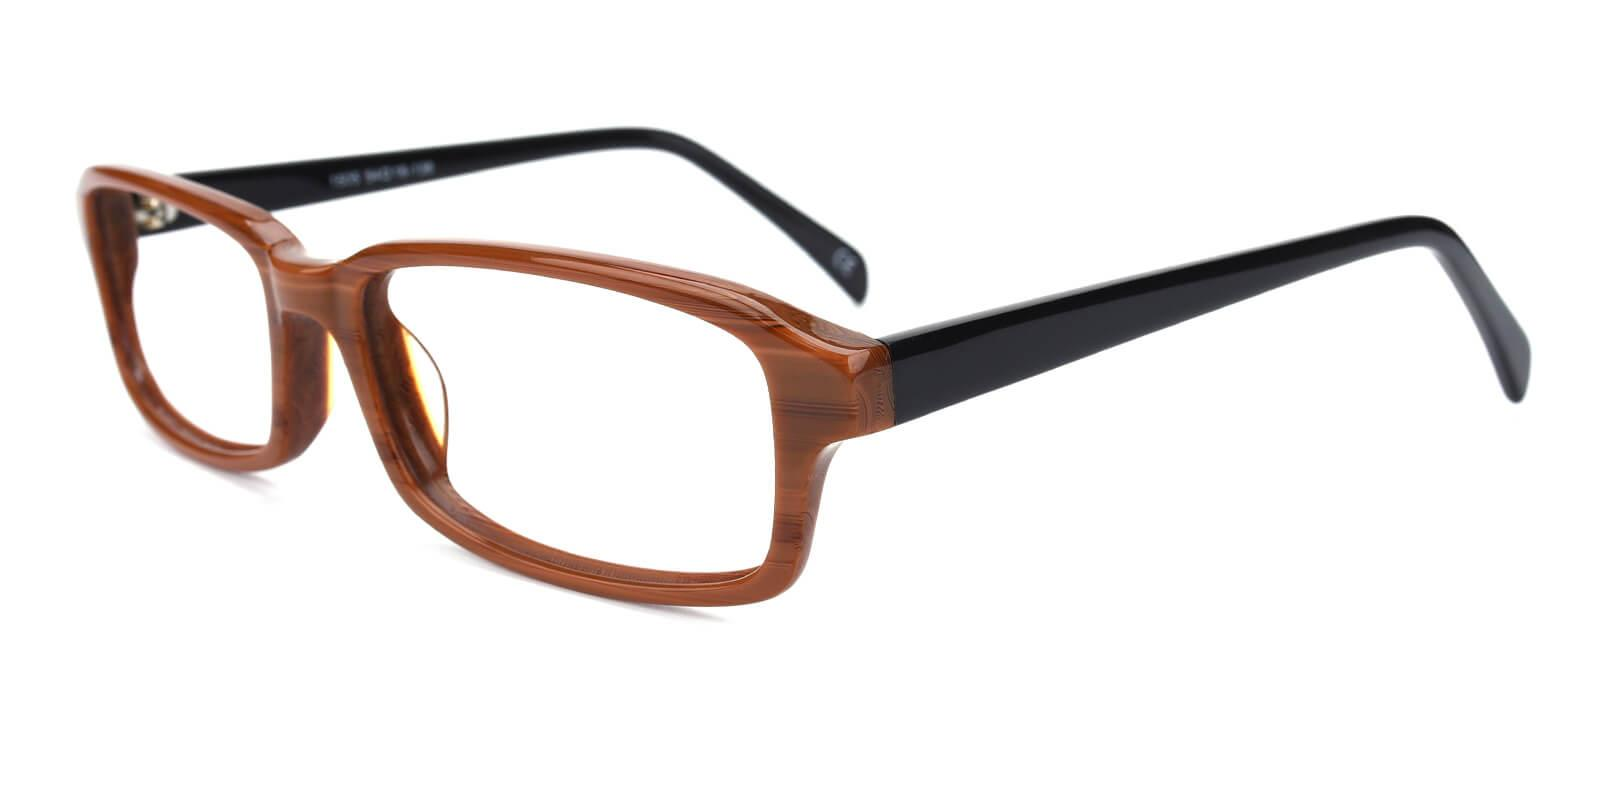 Amber-Brown-Rectangle-Acetate-Eyeglasses-additional1